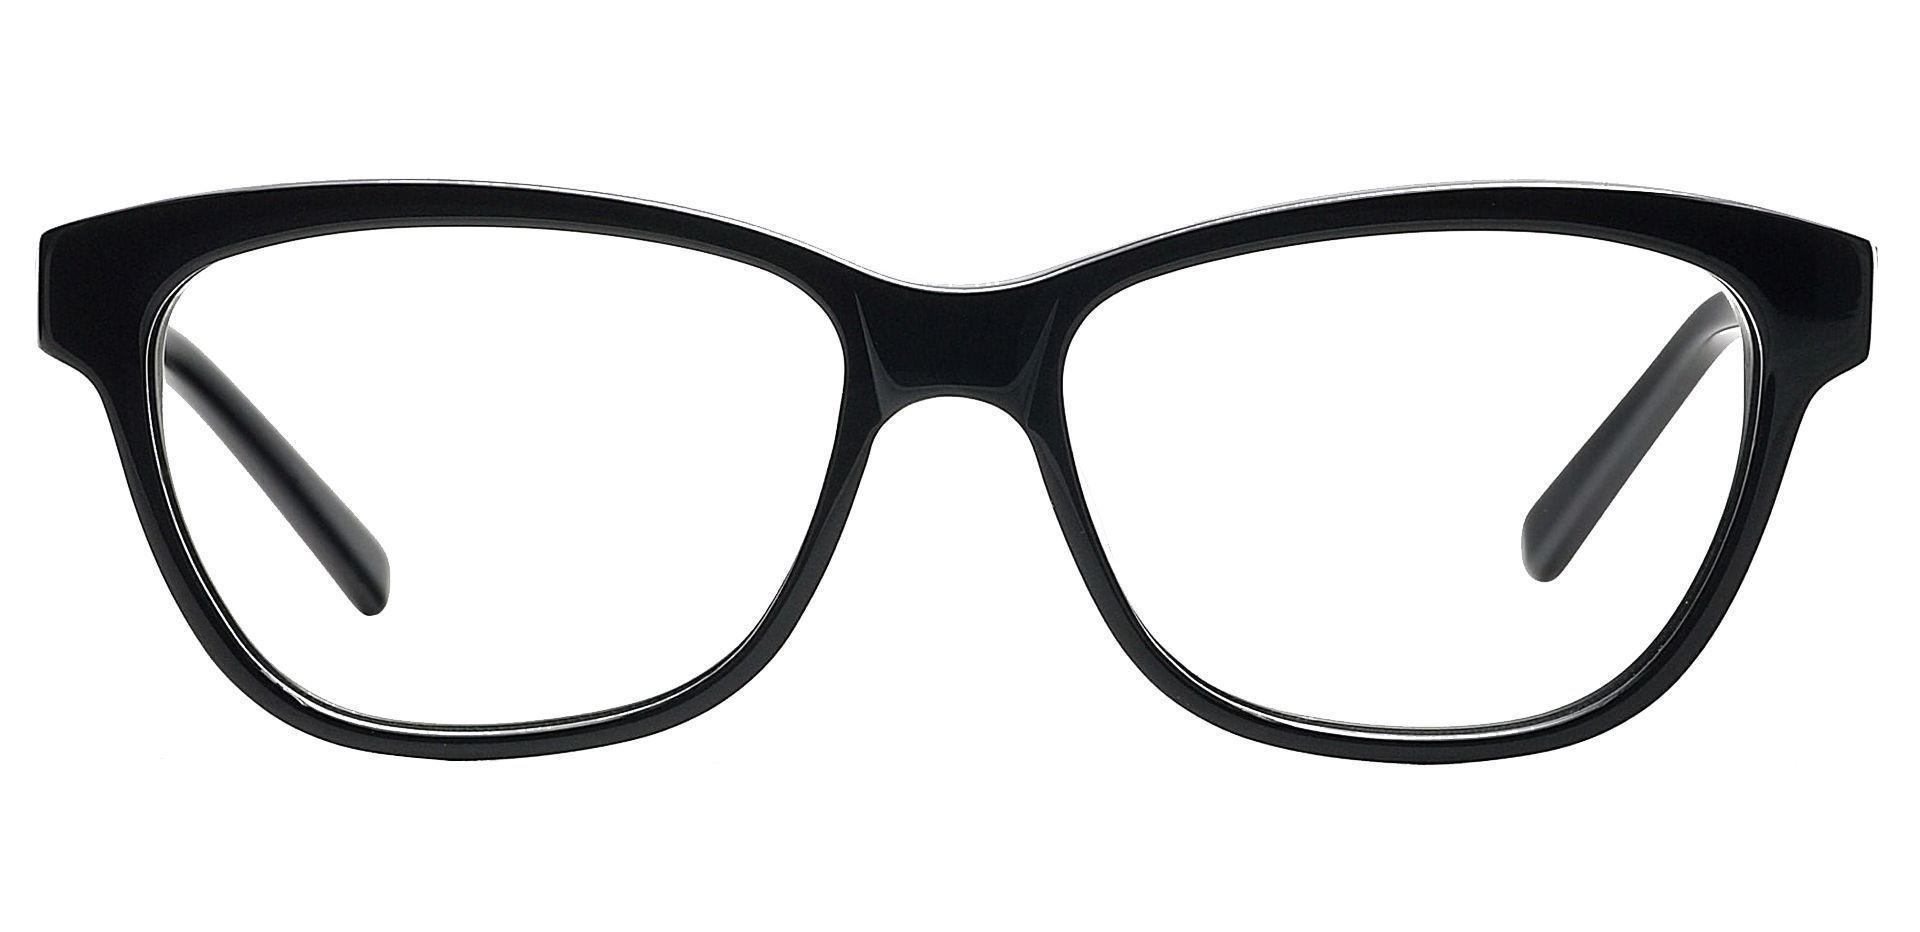 Swell Cat-eye Lined Bifocal Glasses - Black